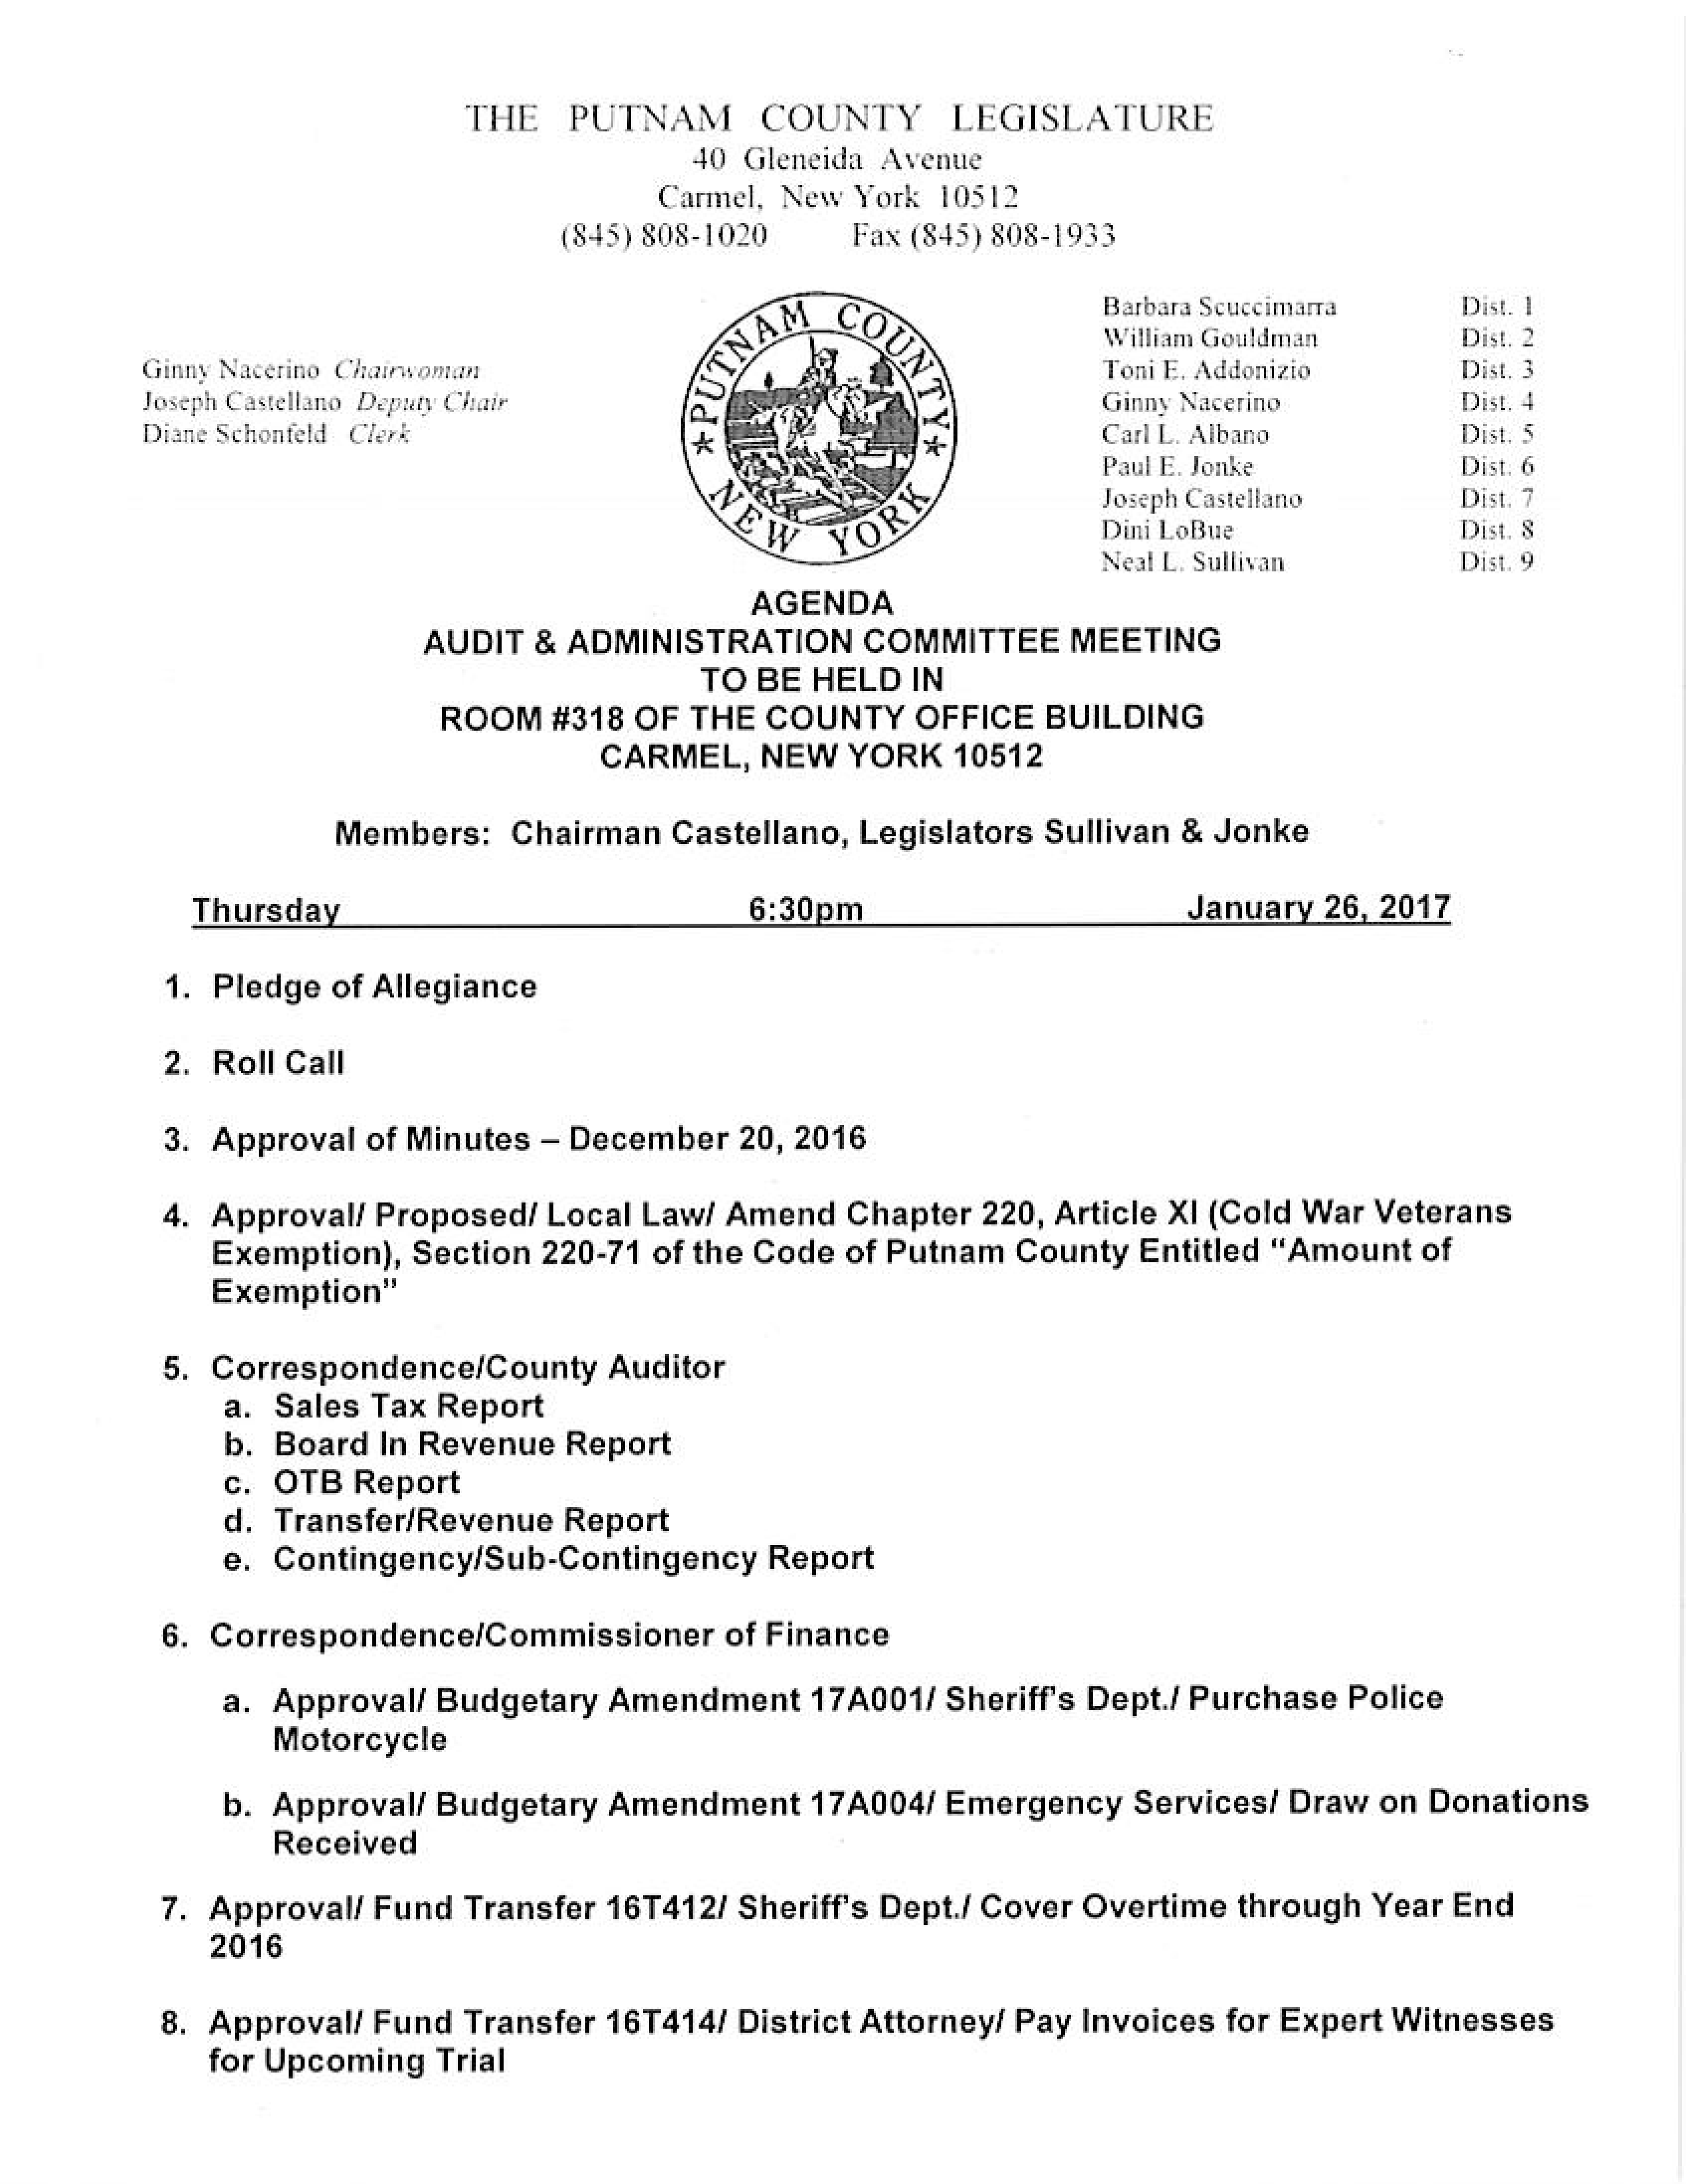 2017_01-26_Audit_Committee_Agenda-1.png